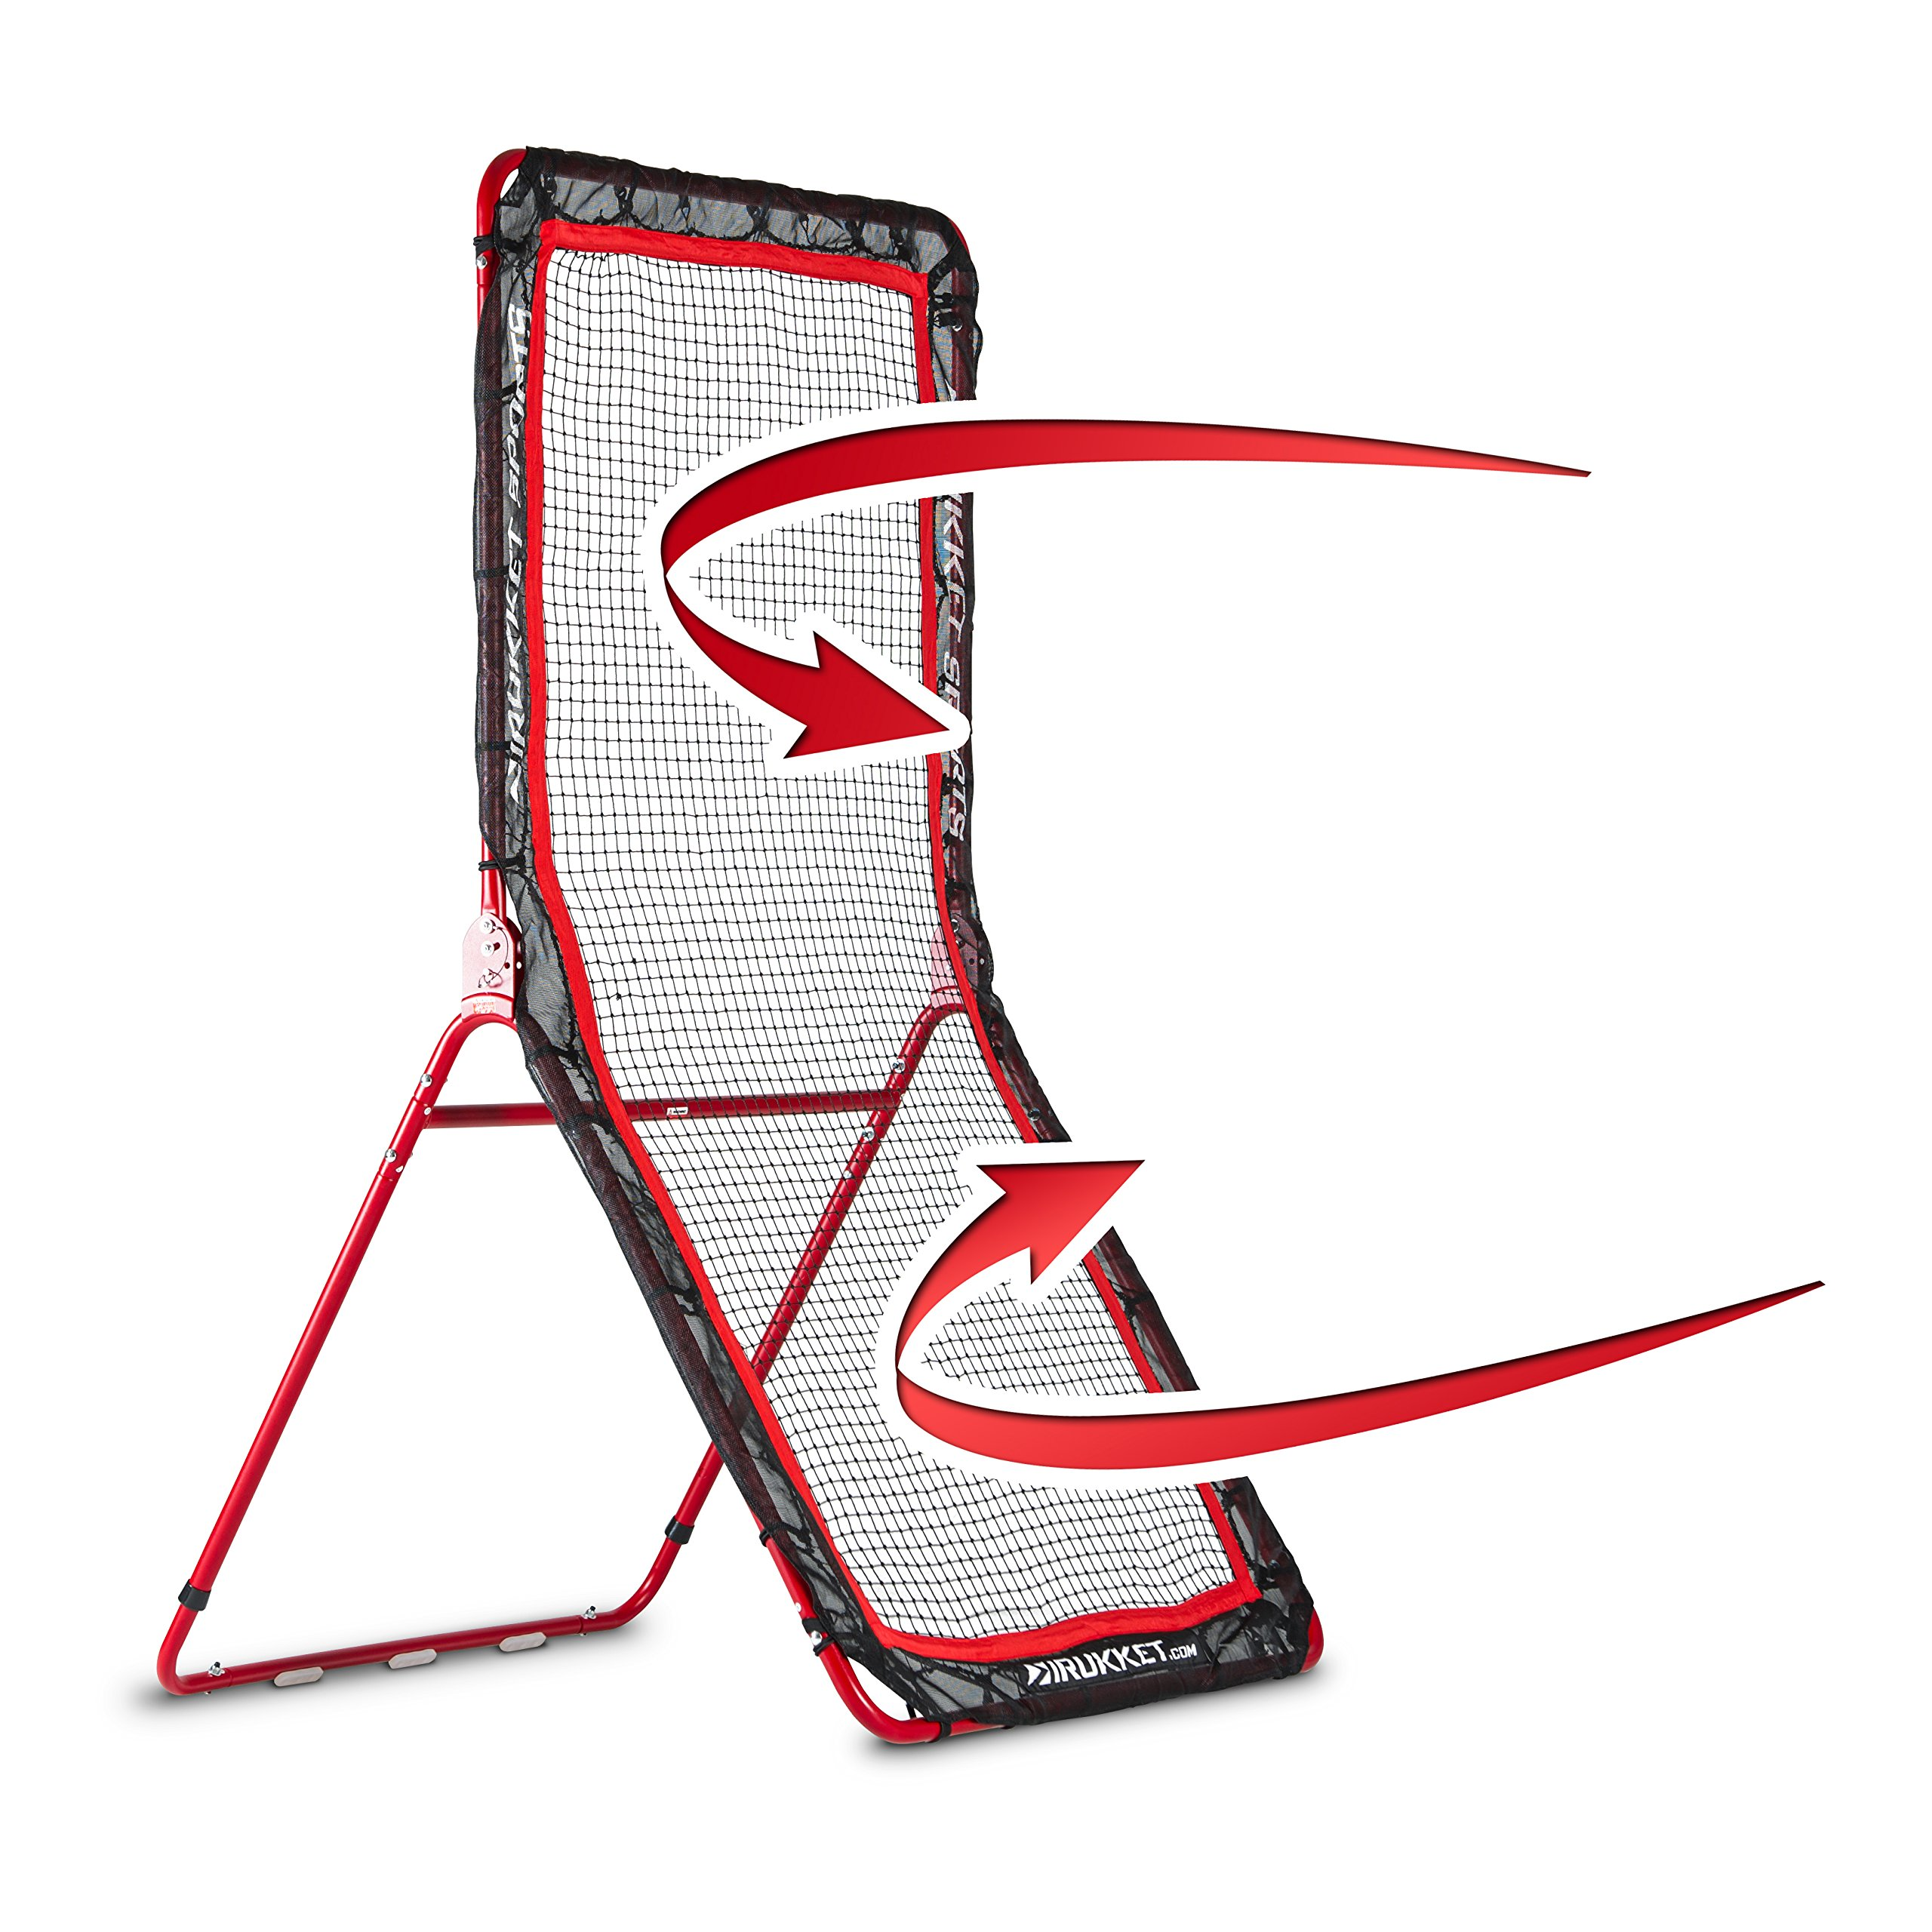 Rukket 4x7ft Baseball / Softball / Lacrosse Rebounder Pitchback Training Screen | Practice Pitching and Throwing by Rukket Sports